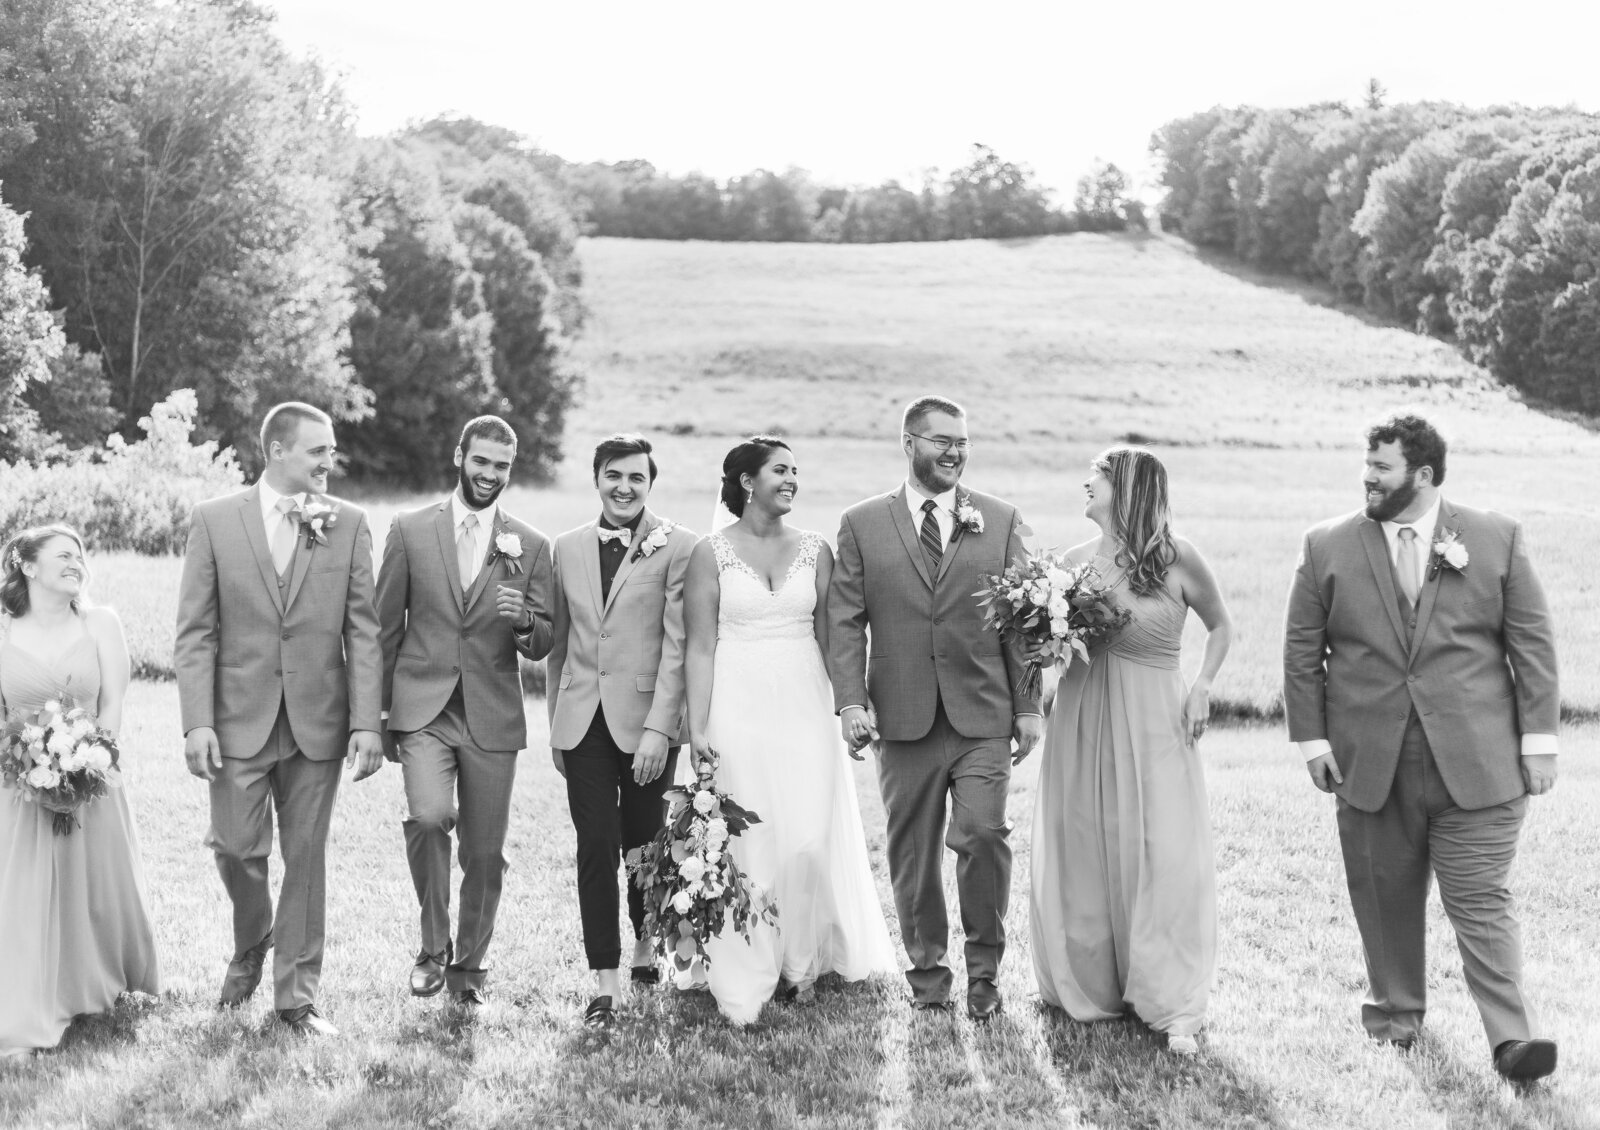 A Midsummer Wedding at Enfield Shaker Museum (139 of 231)